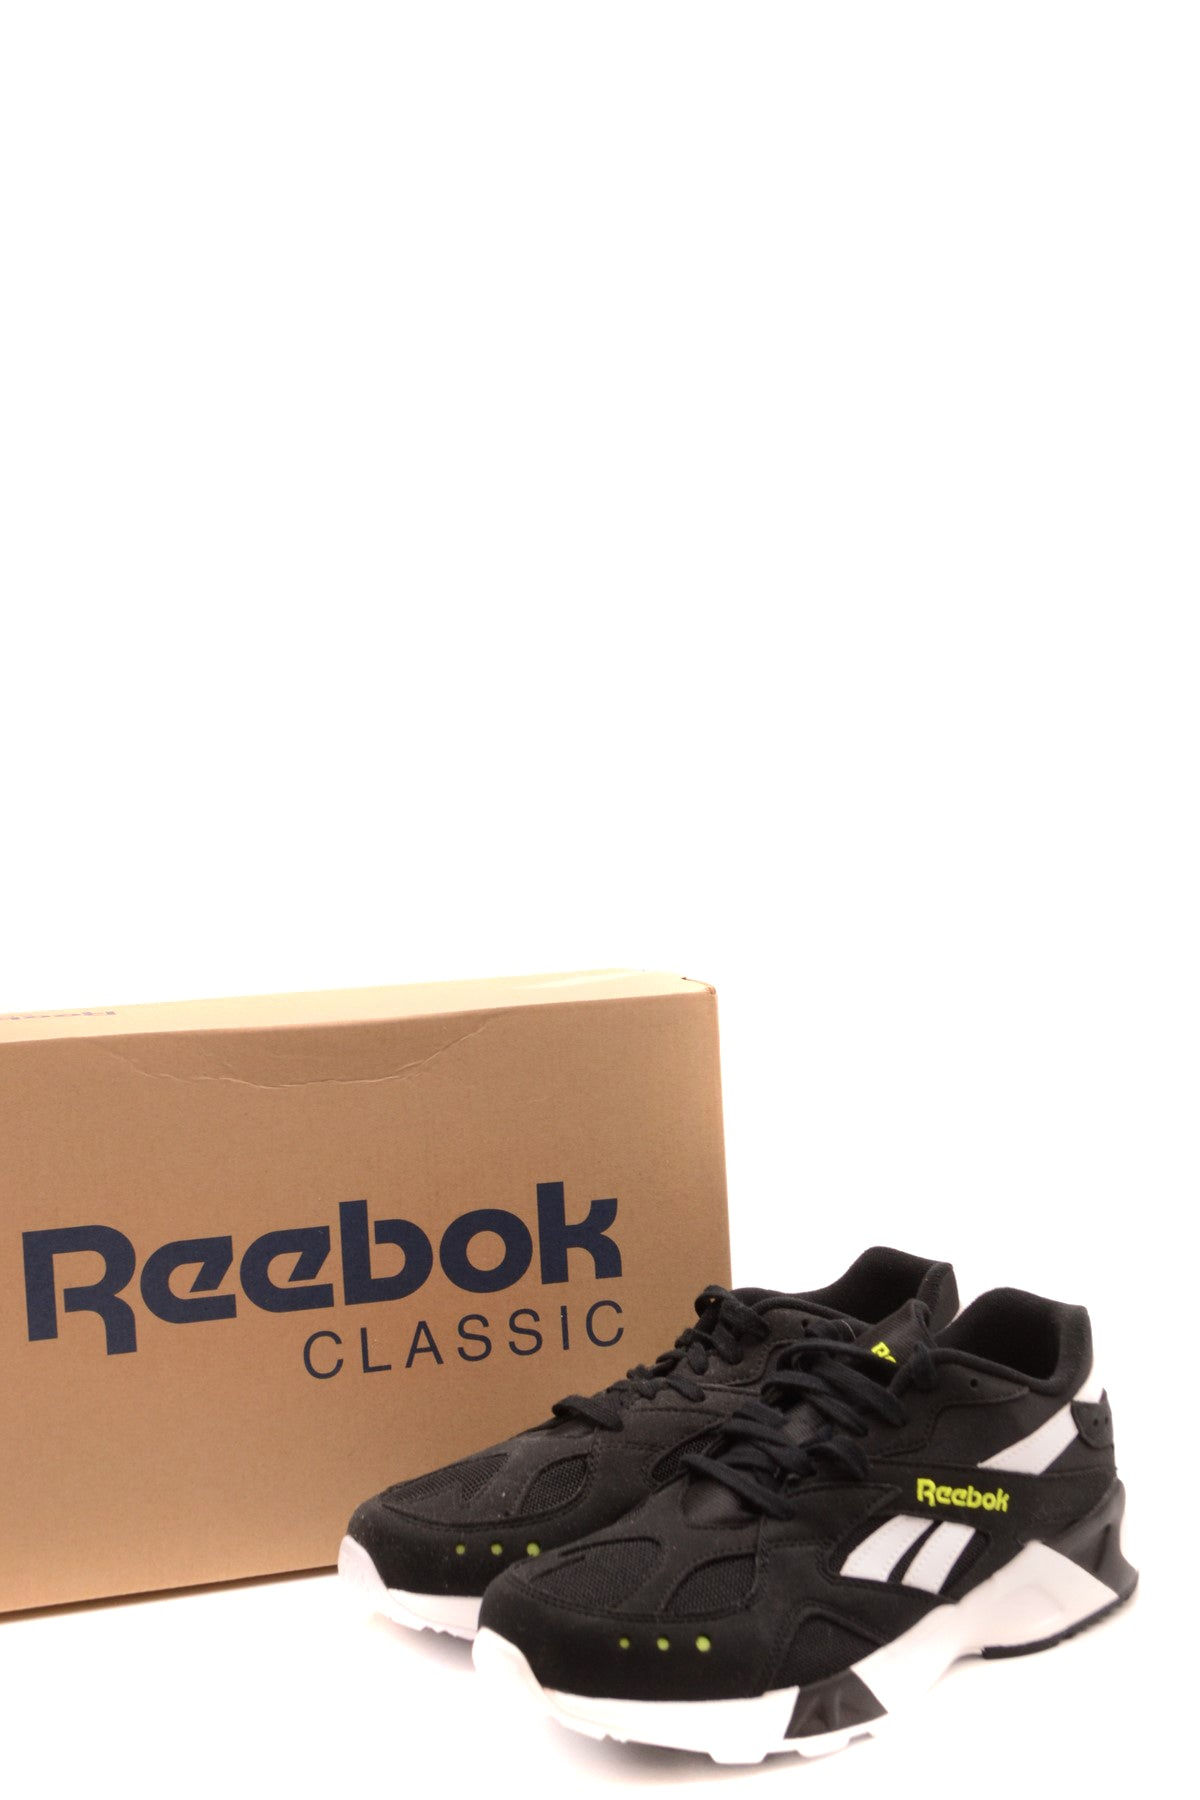 Shoes Reebok-Sports & Entertainment - Sneakers-Product Details Terms: New With LabelMain Color: BlackType Of Accessory: ShoesSeason: Fall / WinterMade In: ChinaGender: ManSize: EuComposition: Chamois 50%, Nylon 50%Year: 2019Manufacturer Part Number: Cn7188-Keyomi-Sook